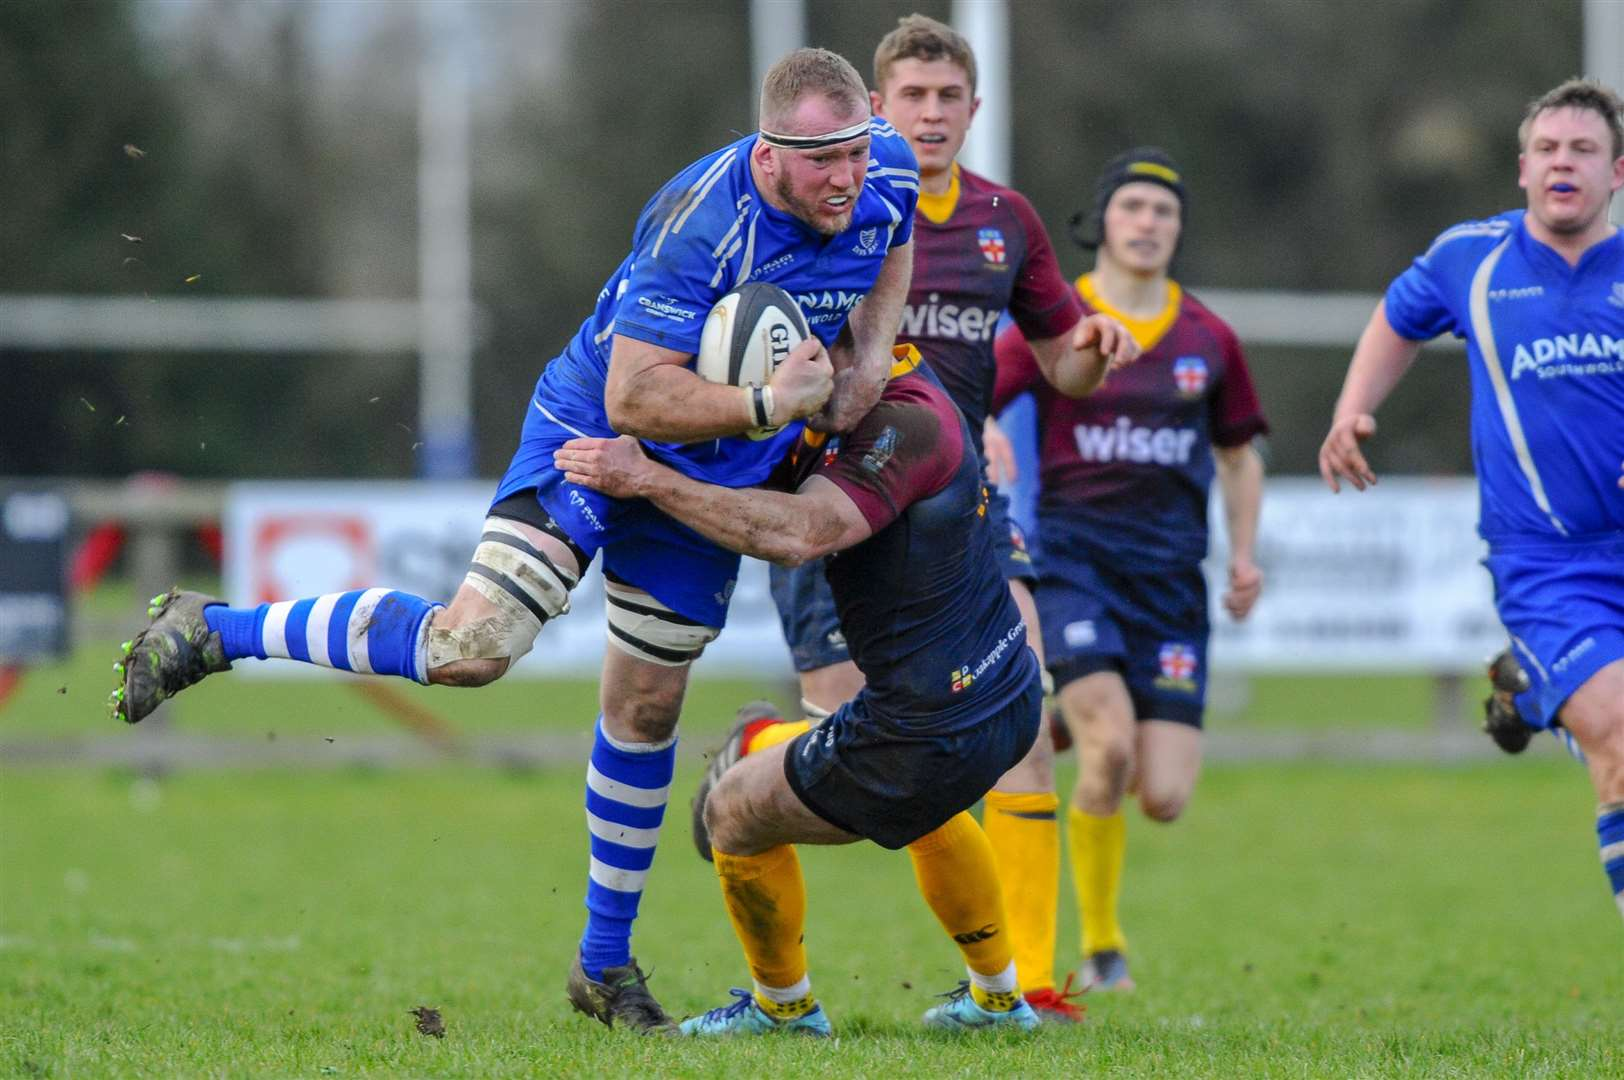 Rugby action from Diss v HAC - John Bergin..Picture: Mark Bullimore Photography. (7528150)